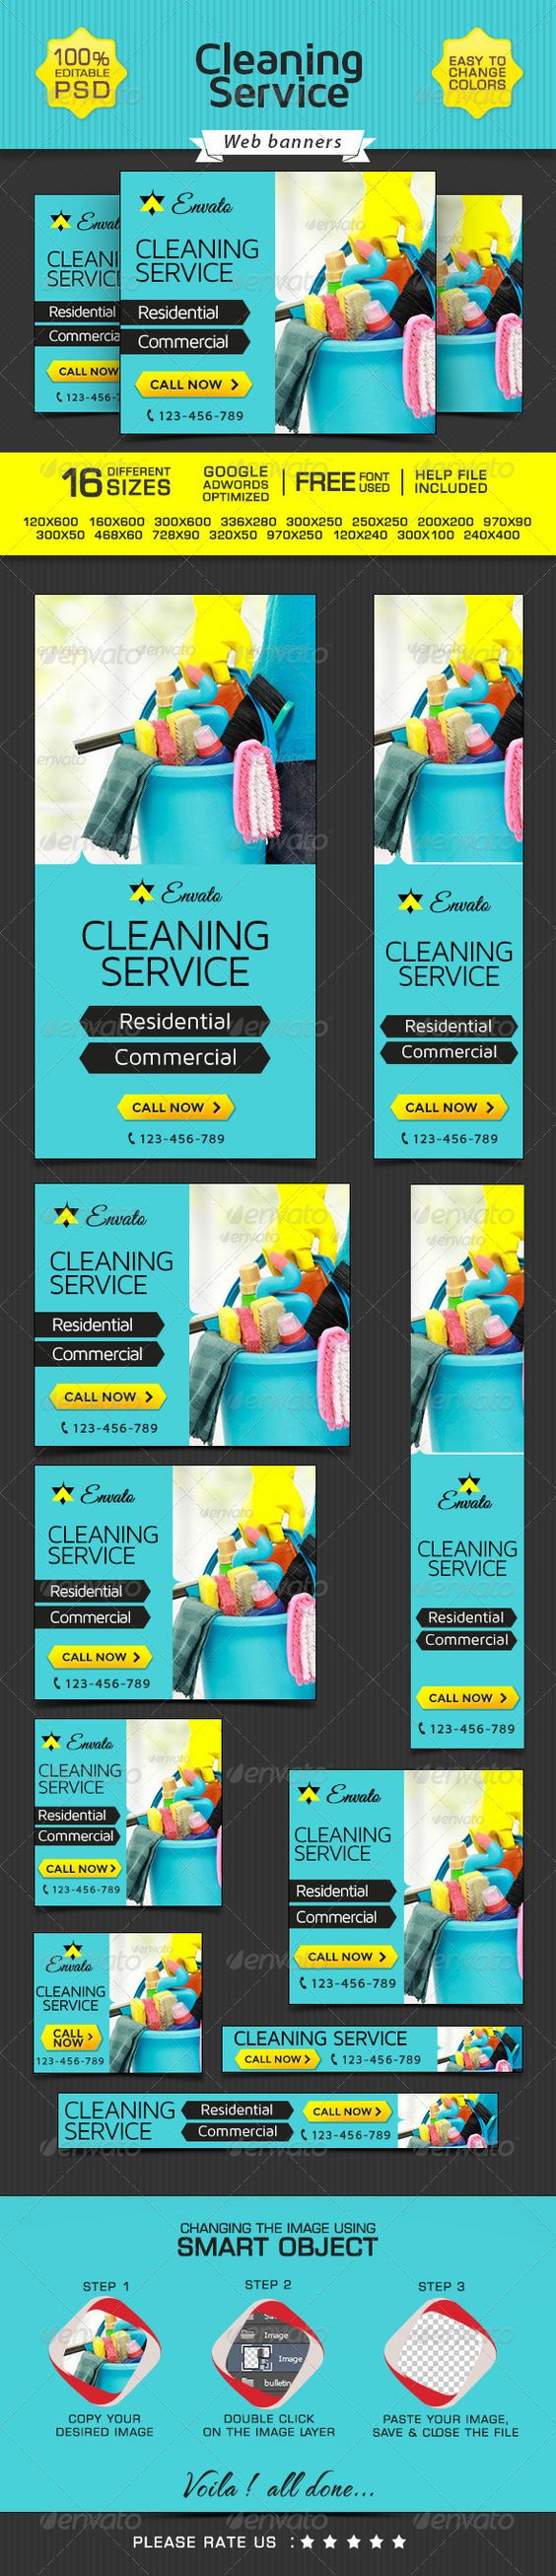 banner design for cleaning company cleaning company banner and buy banner design for cleaning company by doto on graphicriver promote your products and services related to cleaning niche this great looking banner